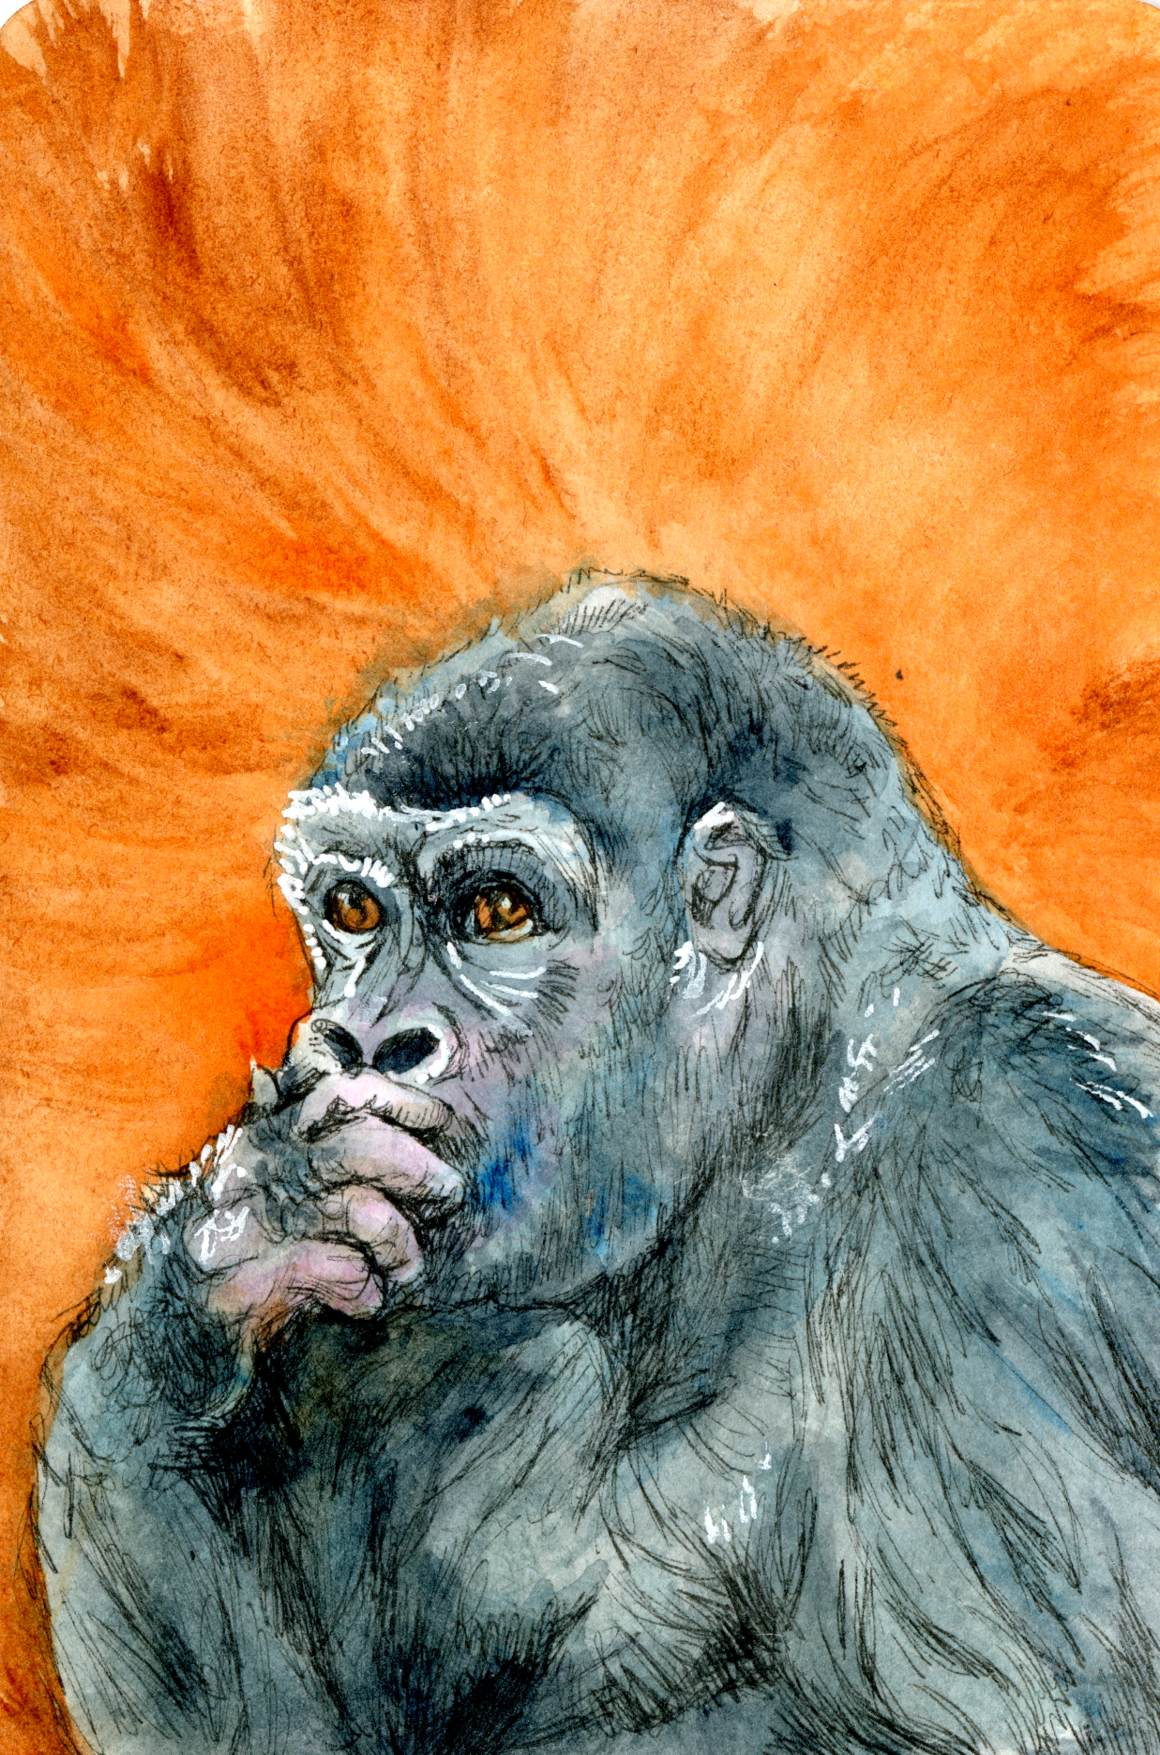 Gorilla in Thinker Pose – Postcards for the Lunch Bag